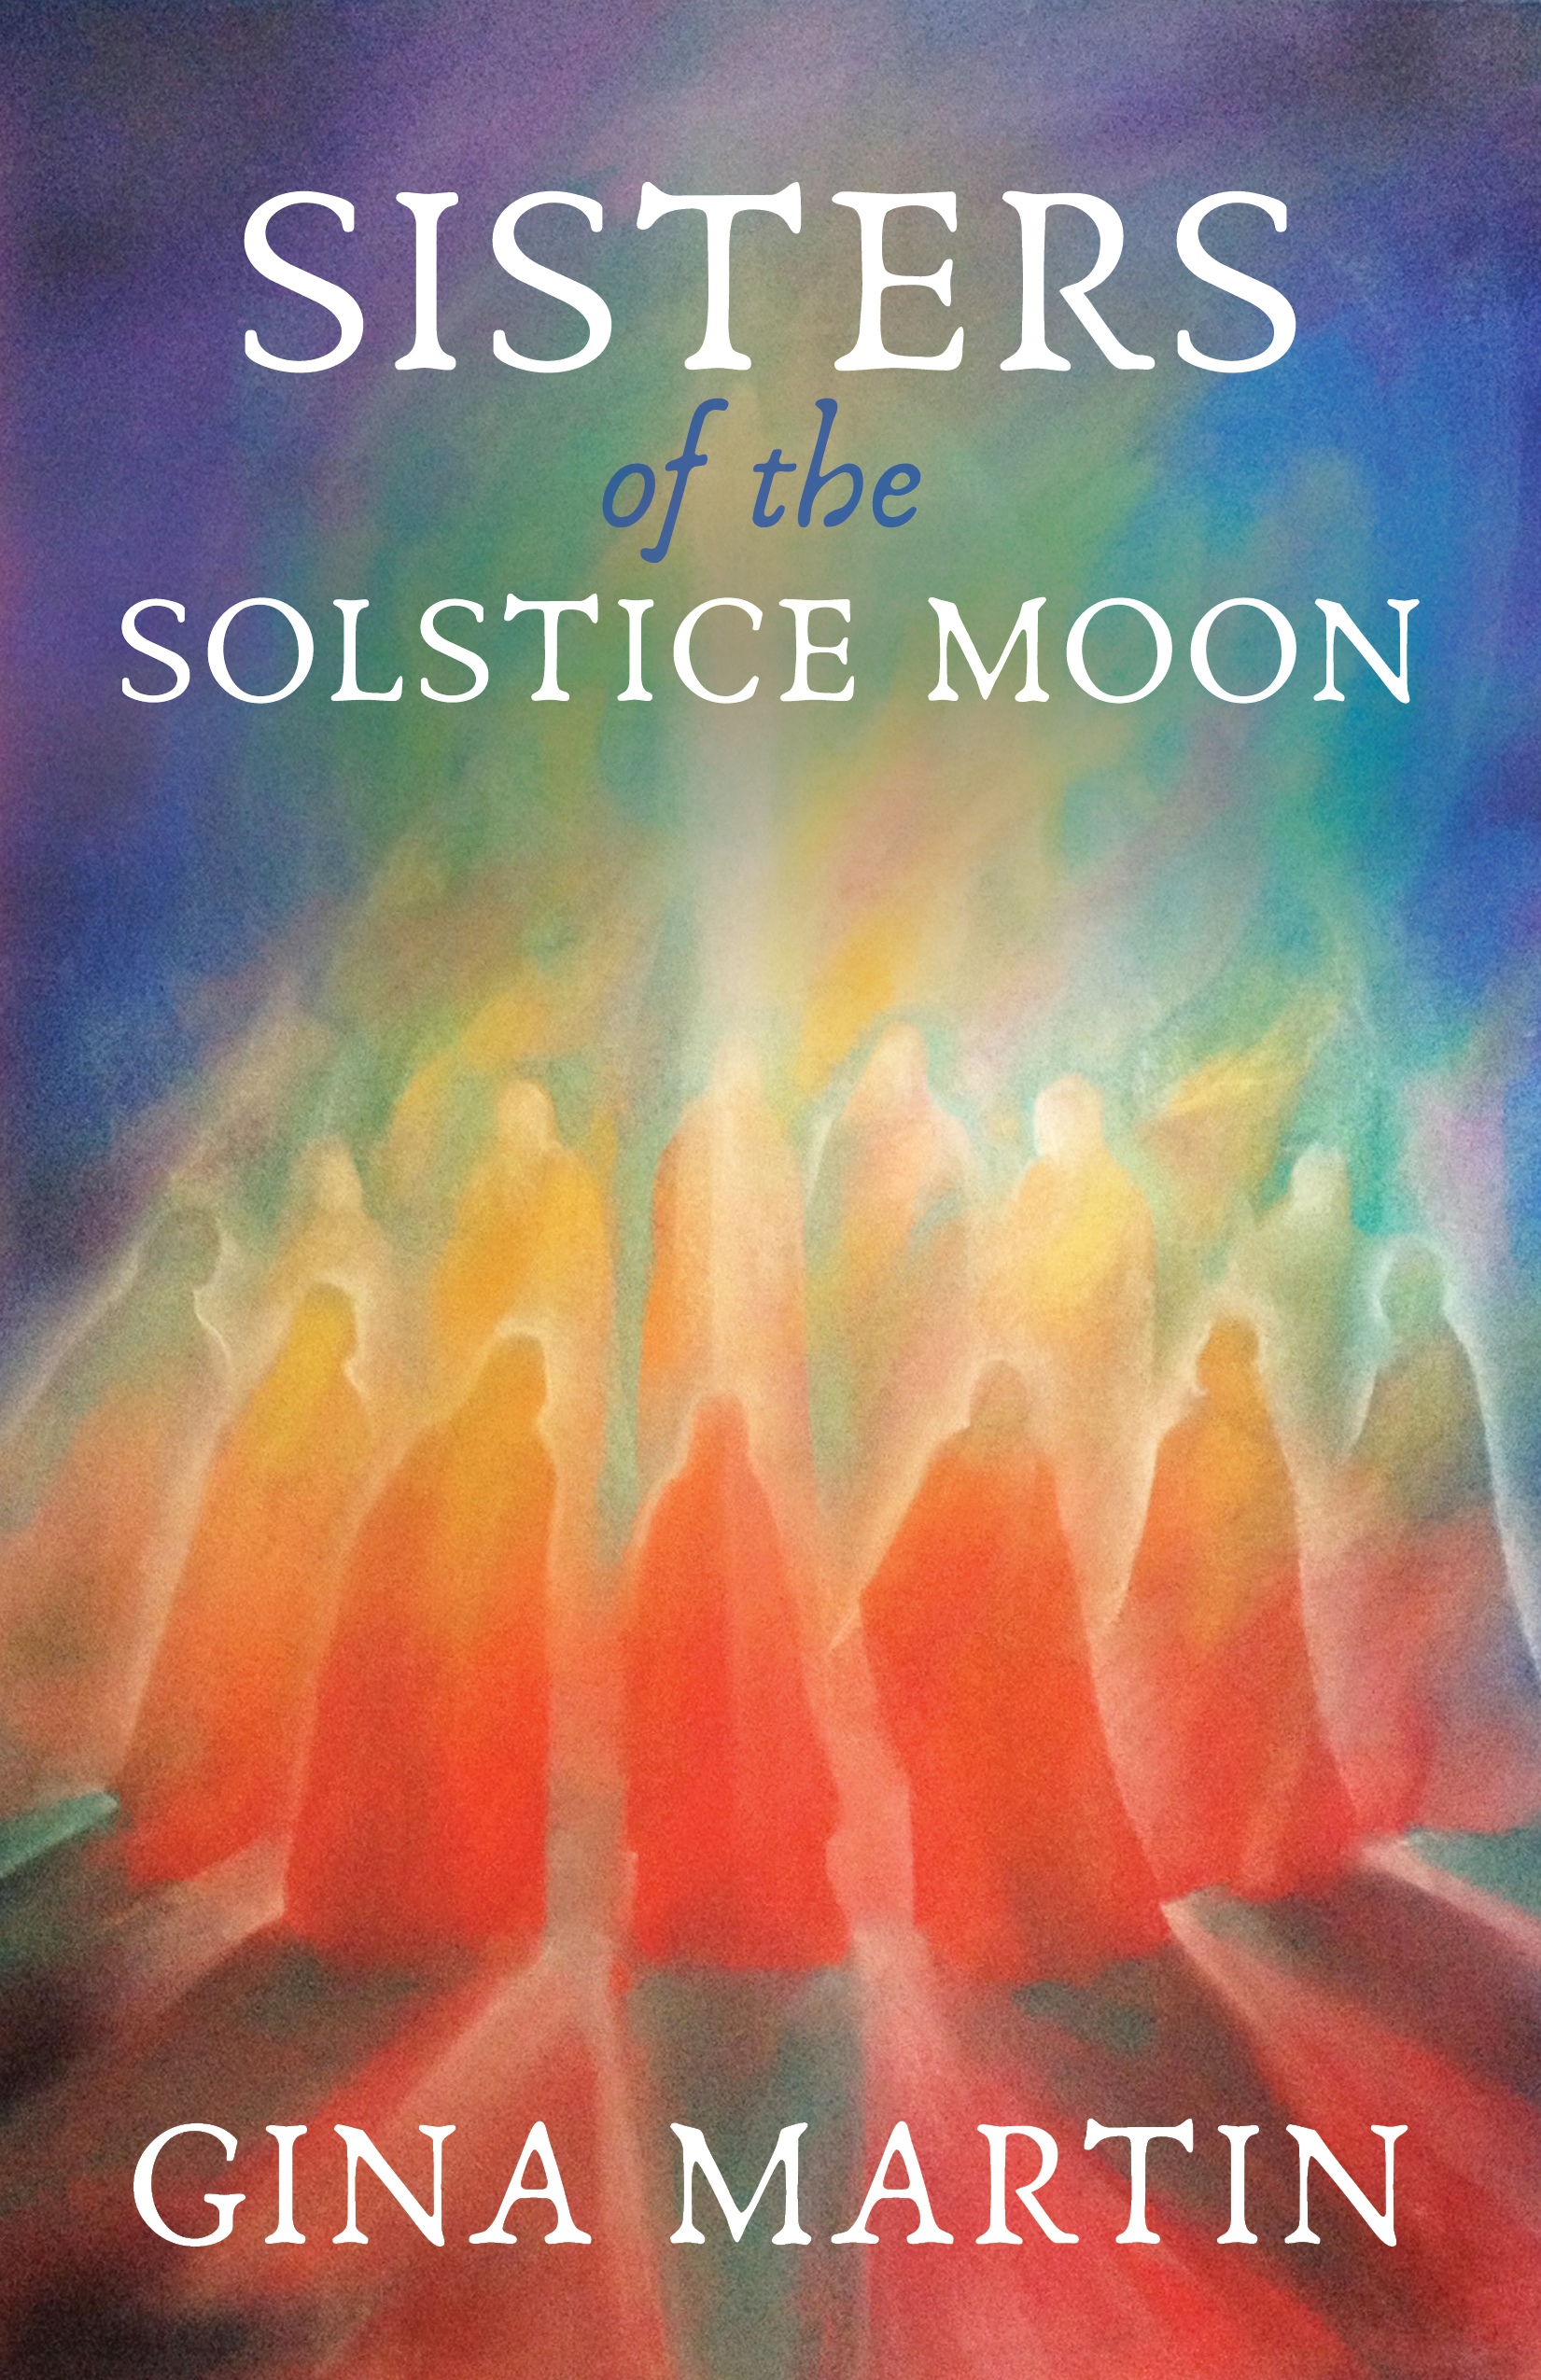 Sisters of the Solstice Moon, by Gina Martin